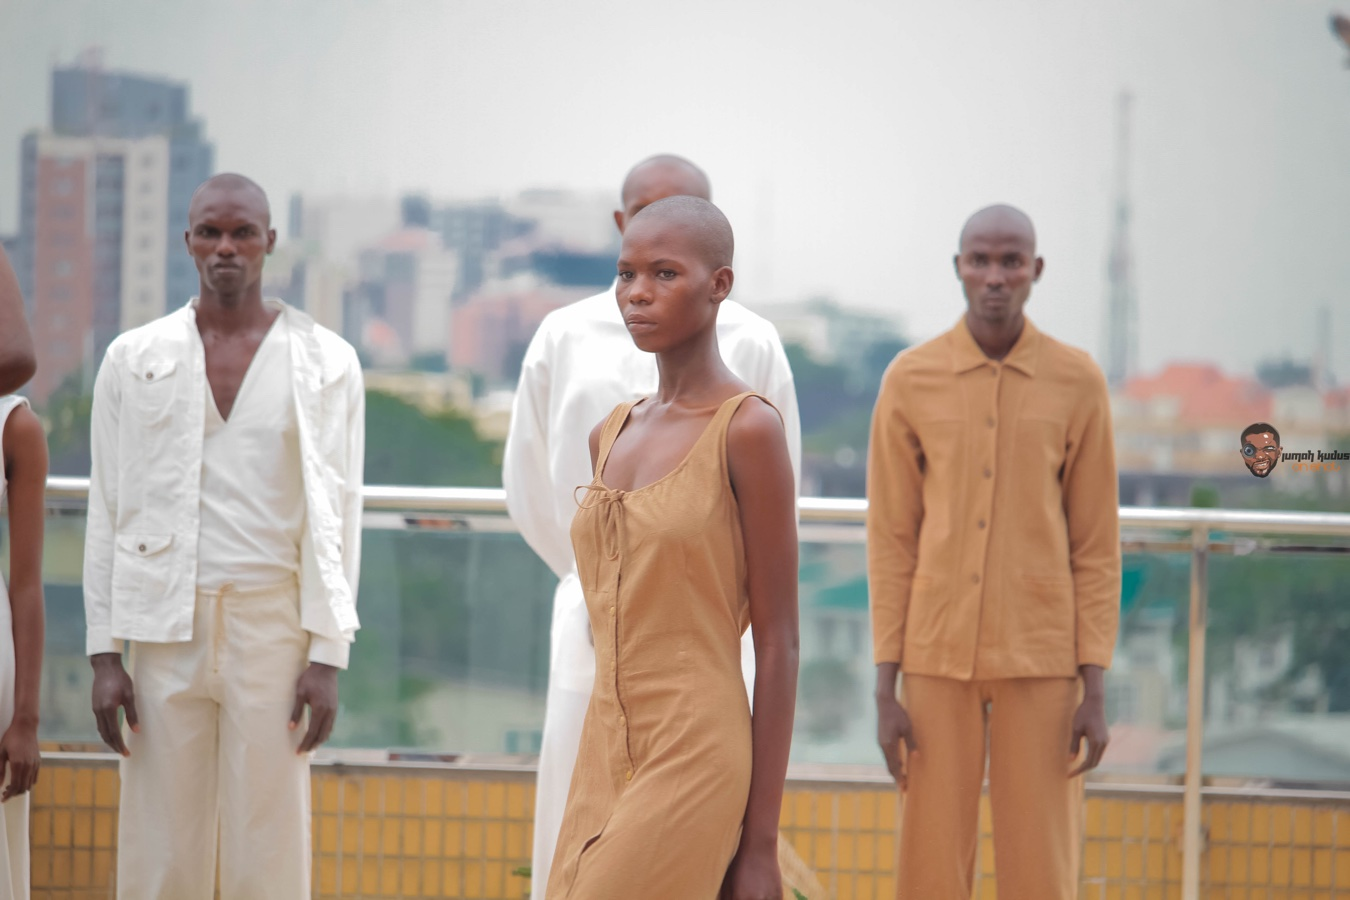 """Maxivive Tells A Compelling Story About Resilience & Bravery With """"Okiti"""" For Dry 2019"""